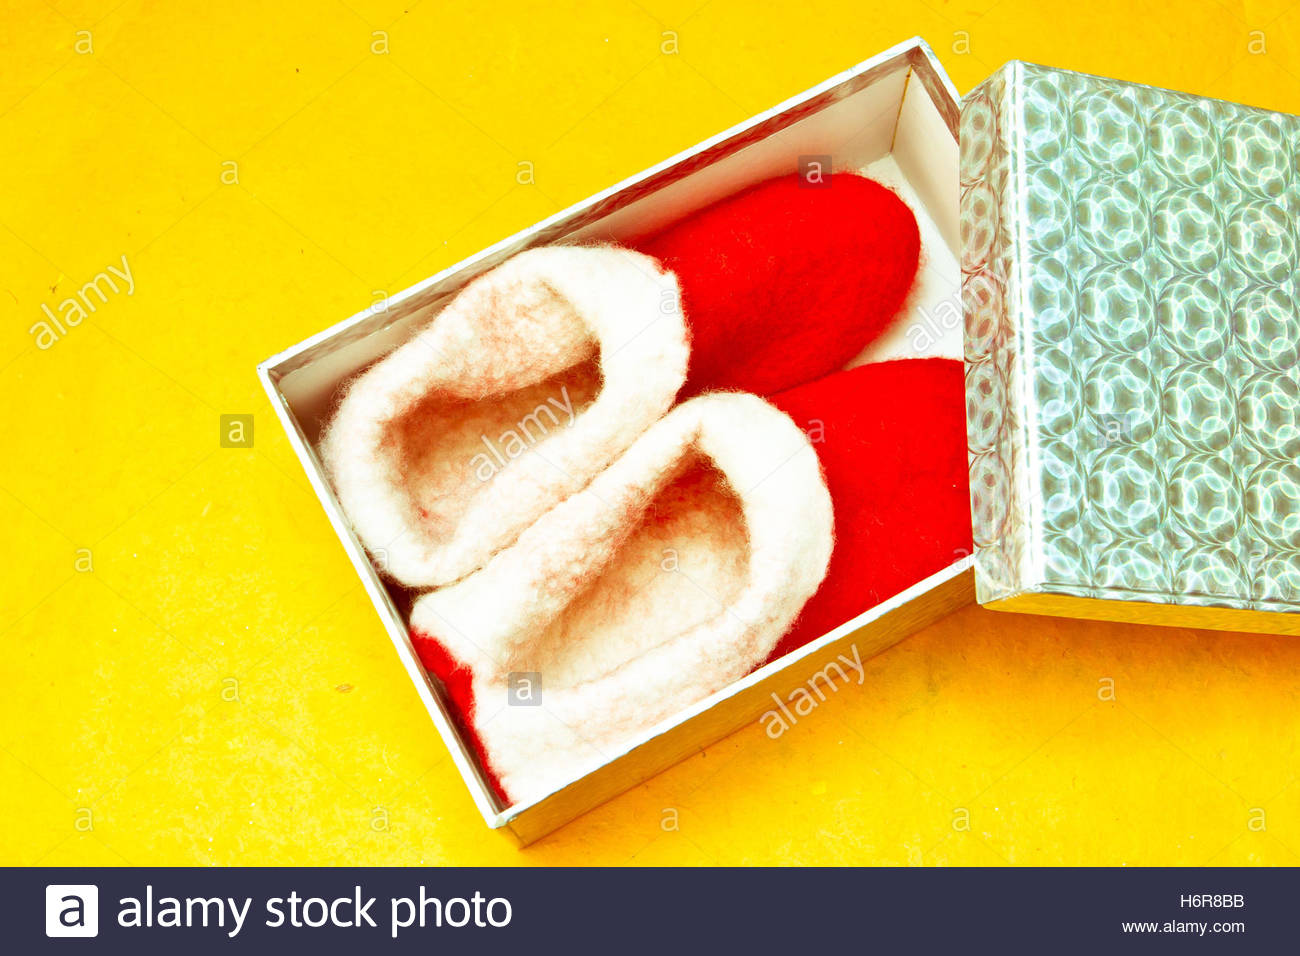 present shoes date time time indication wool gift day during the day parcel box boxes christmas felt season imagining - Stock Image